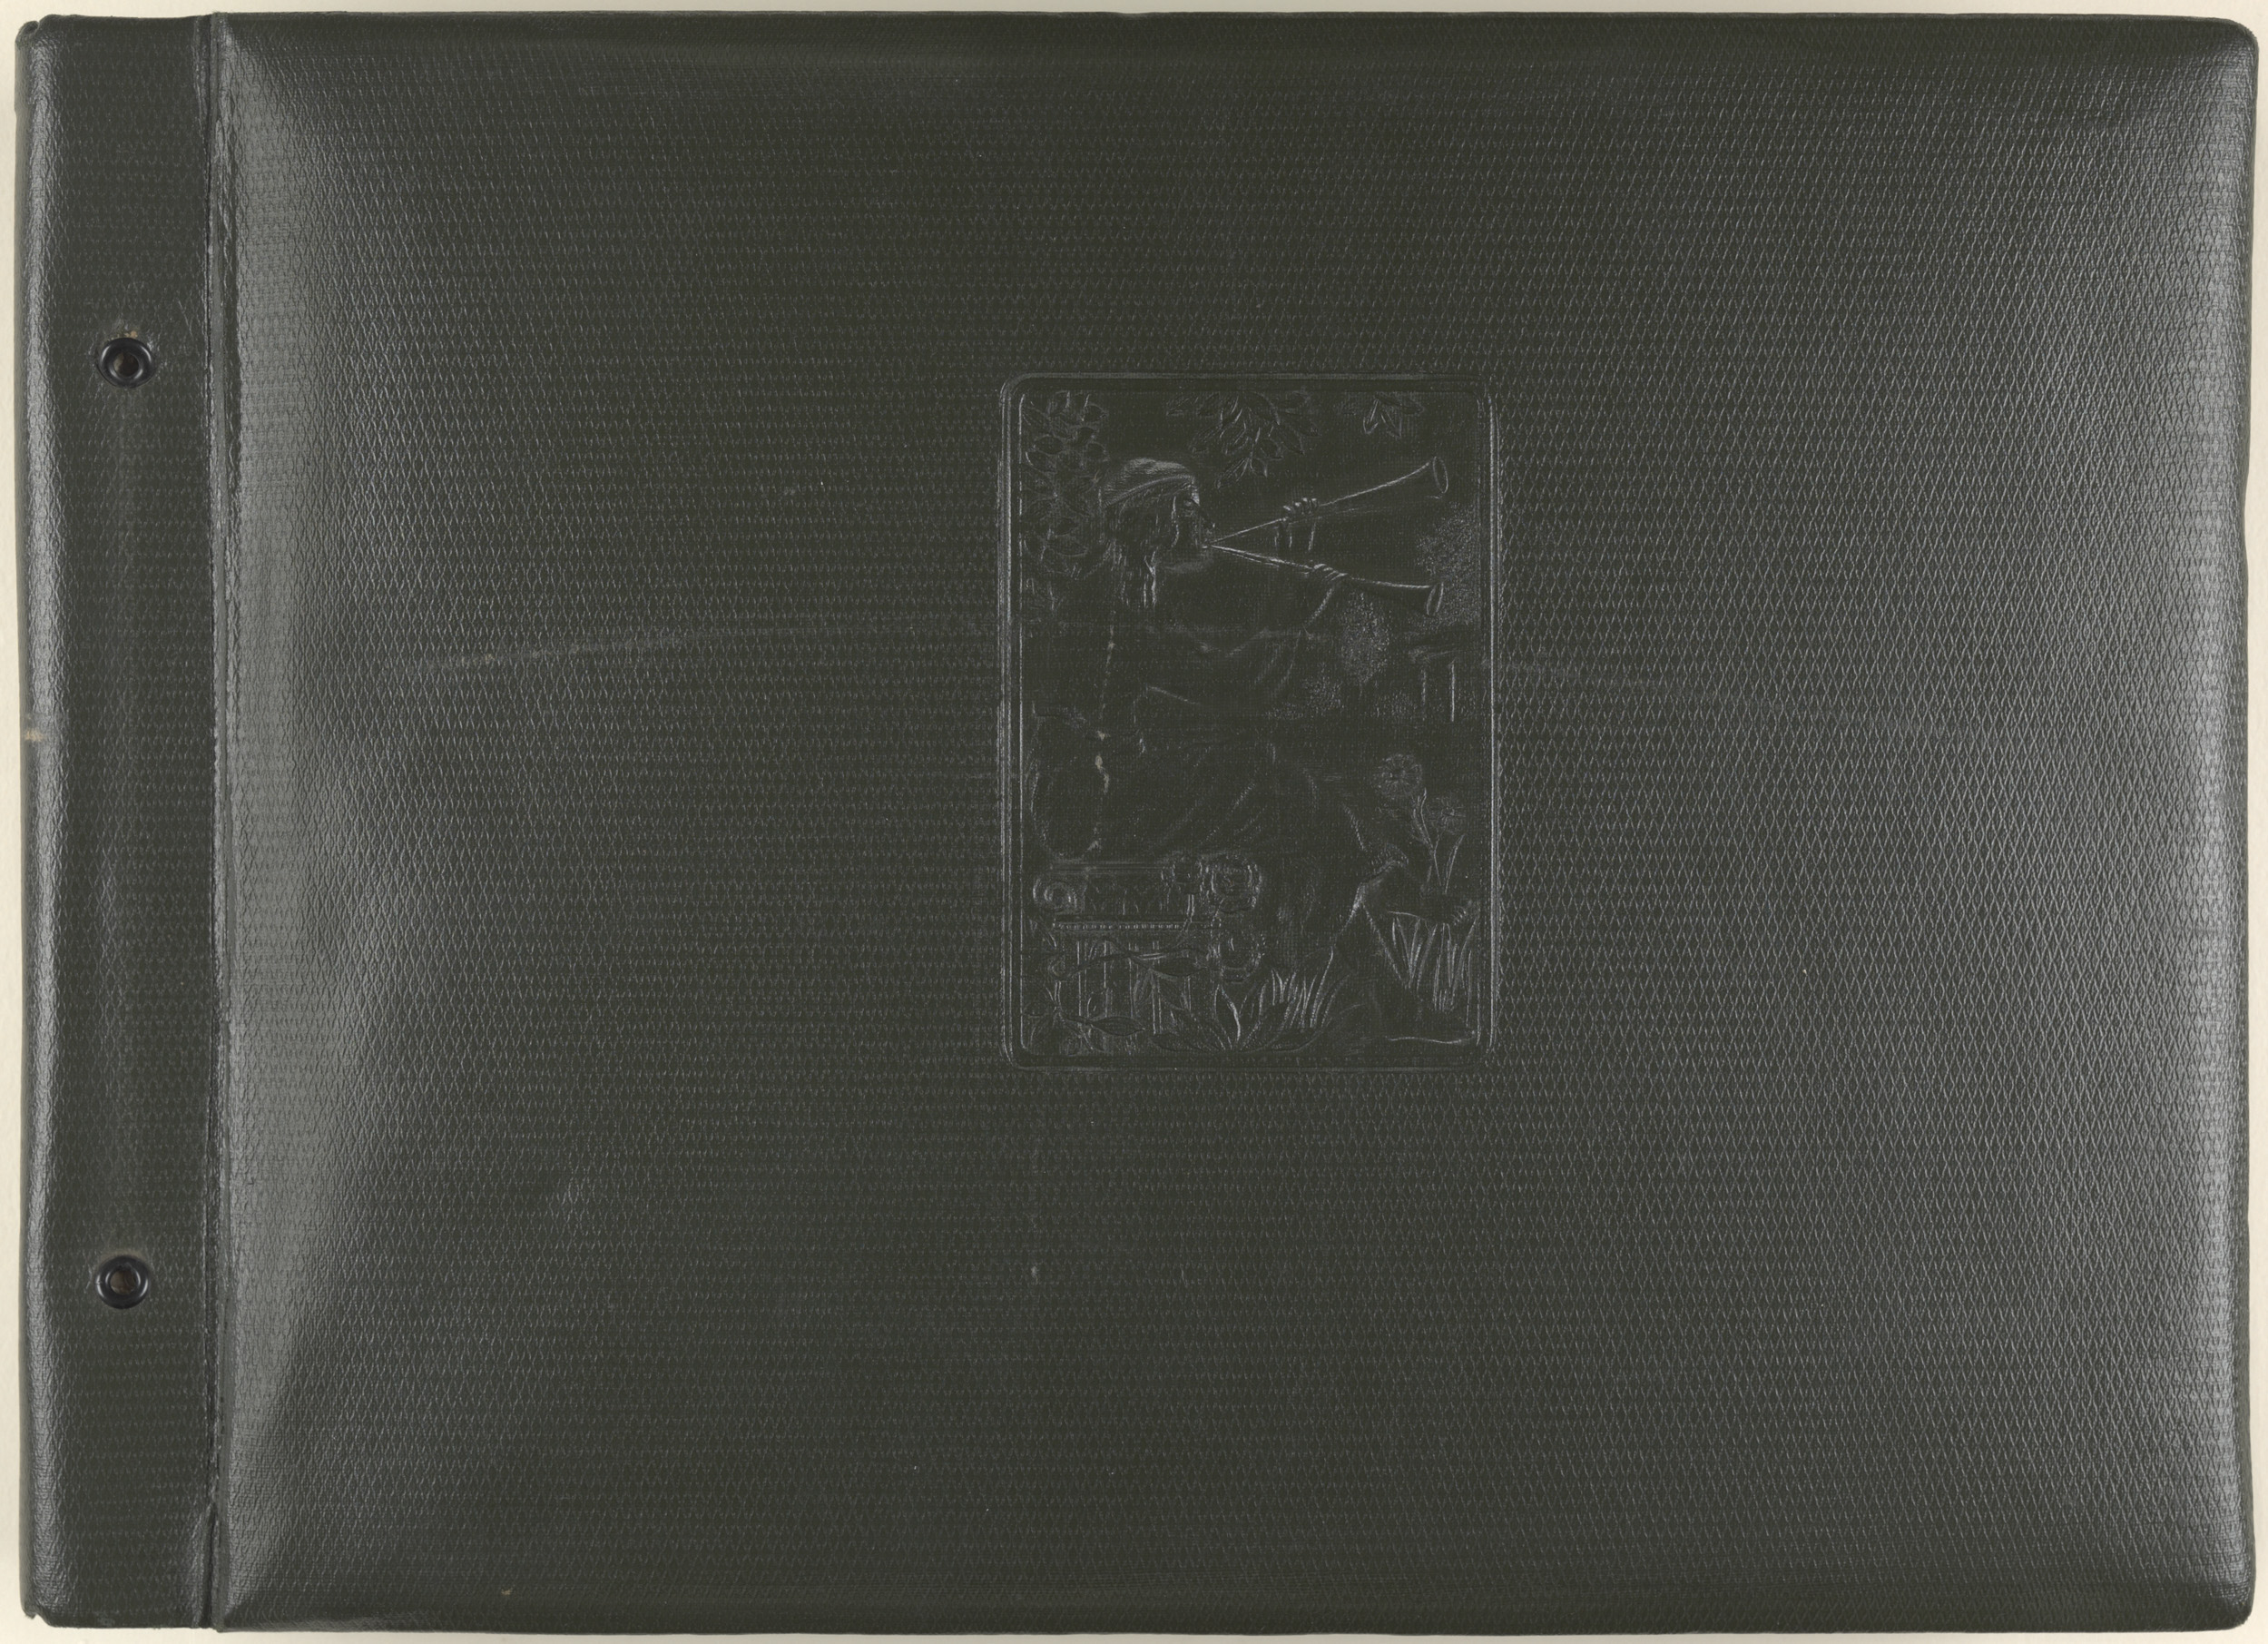 Photograph album of Mr L.G. Watt - cover album 1